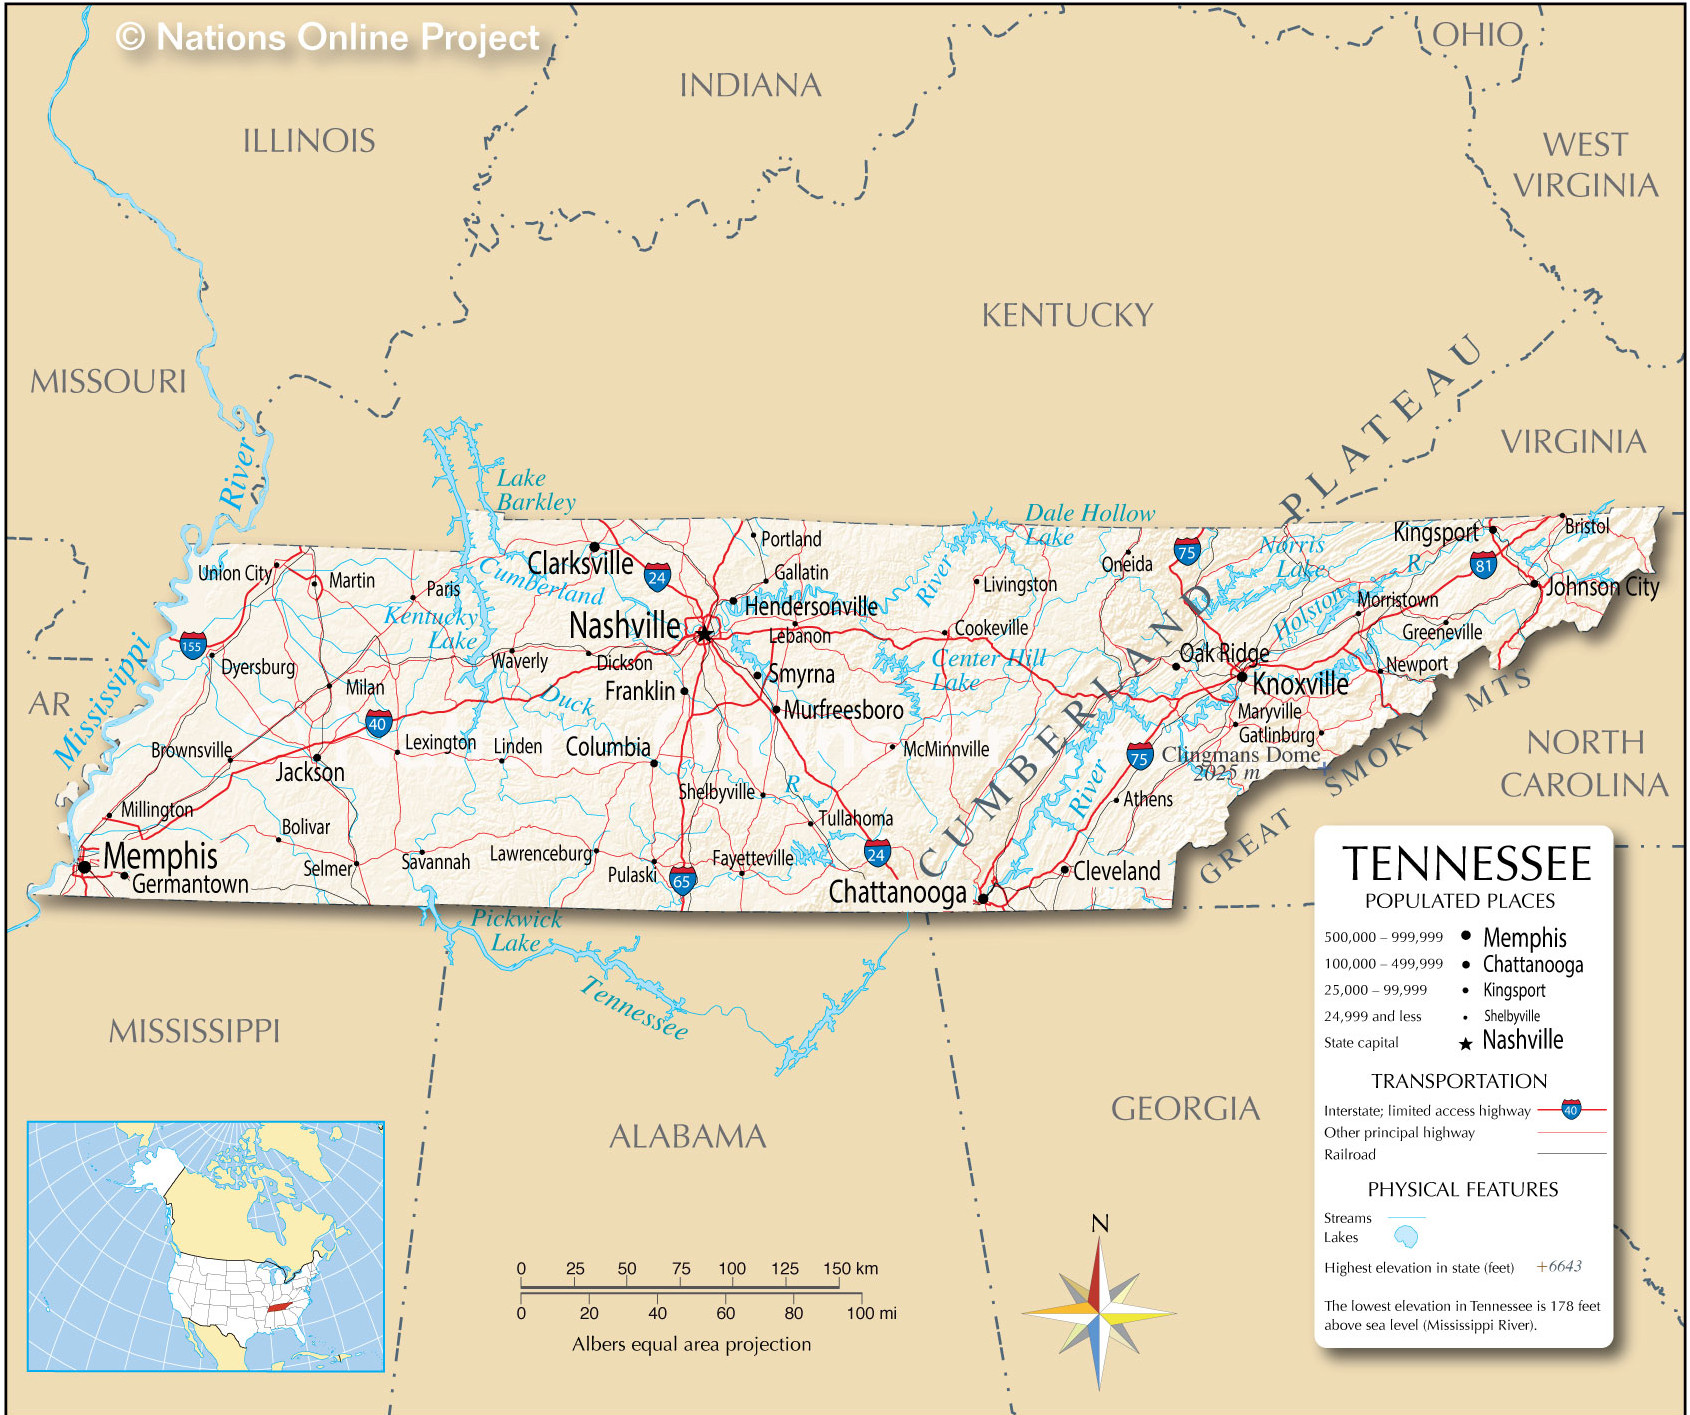 Detailed map of Tennessee